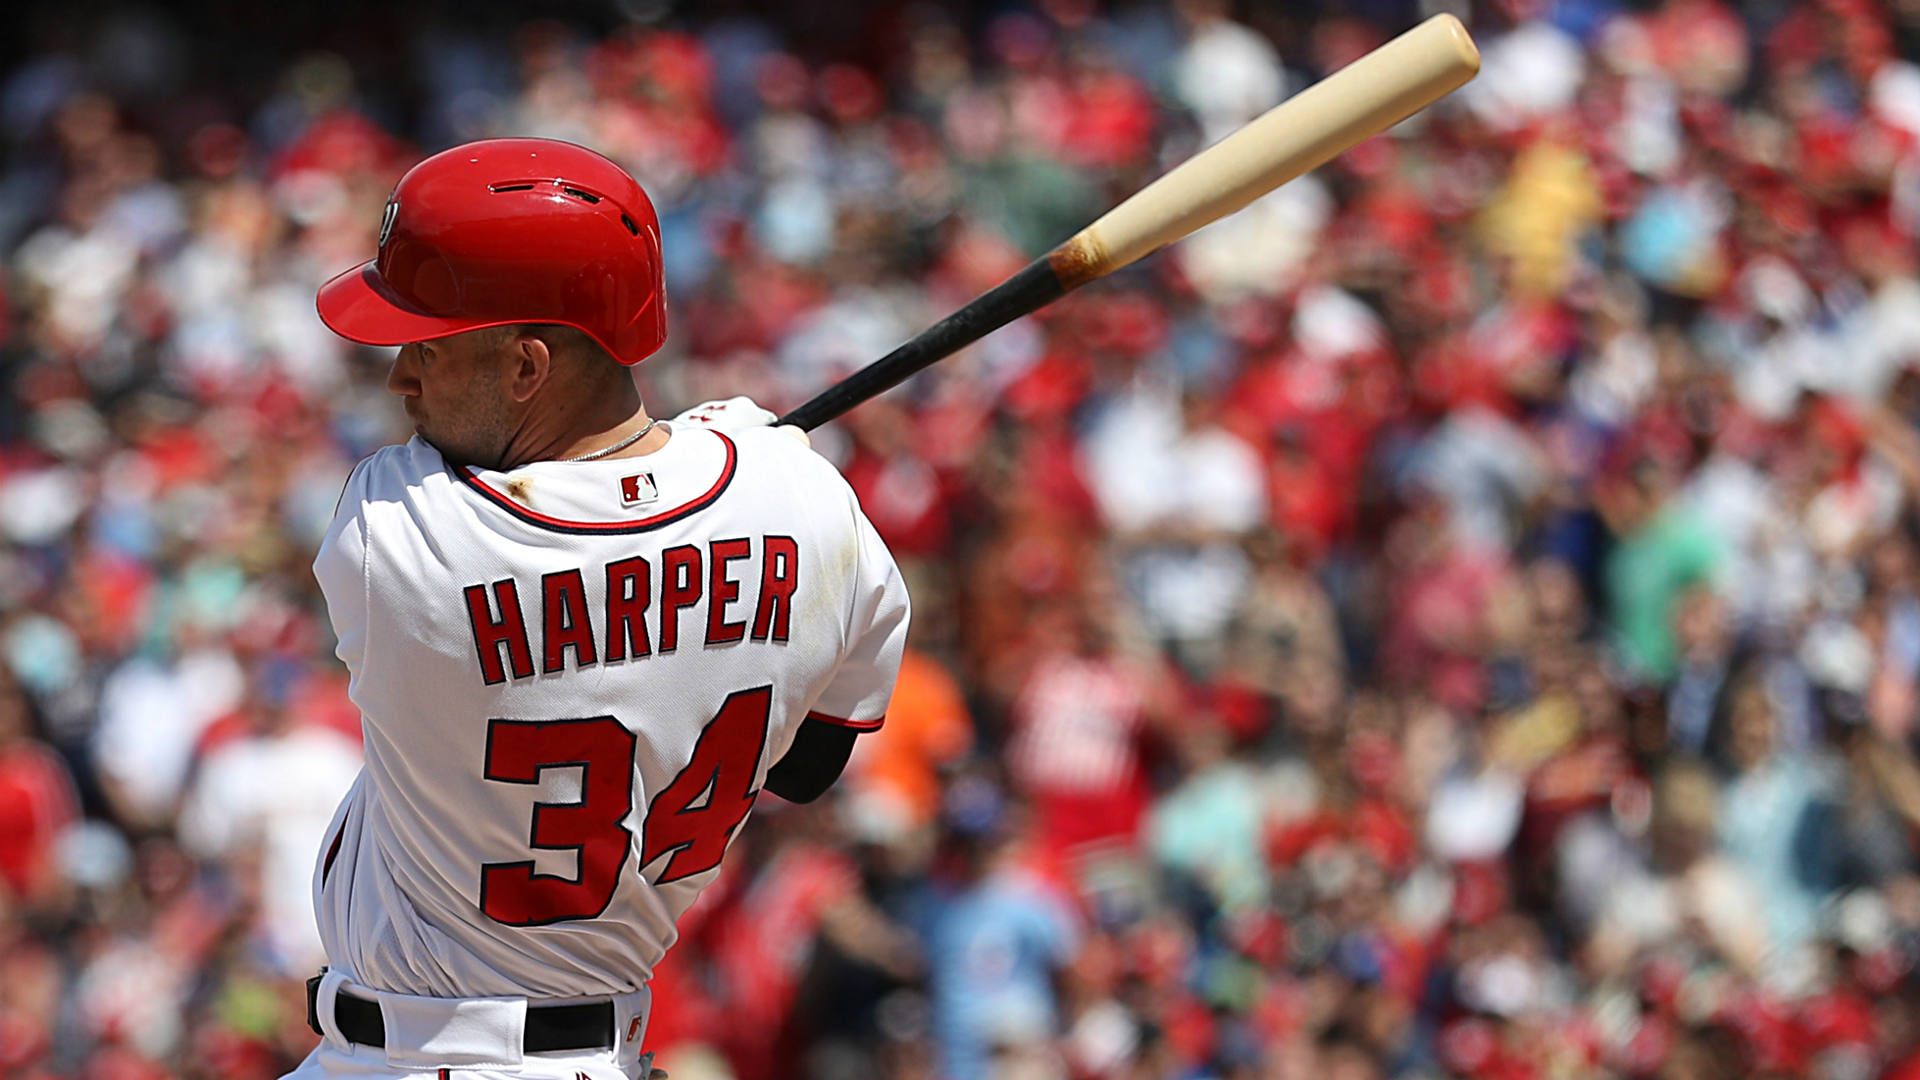 baseball player bryce harper desktop wallpaper 63154